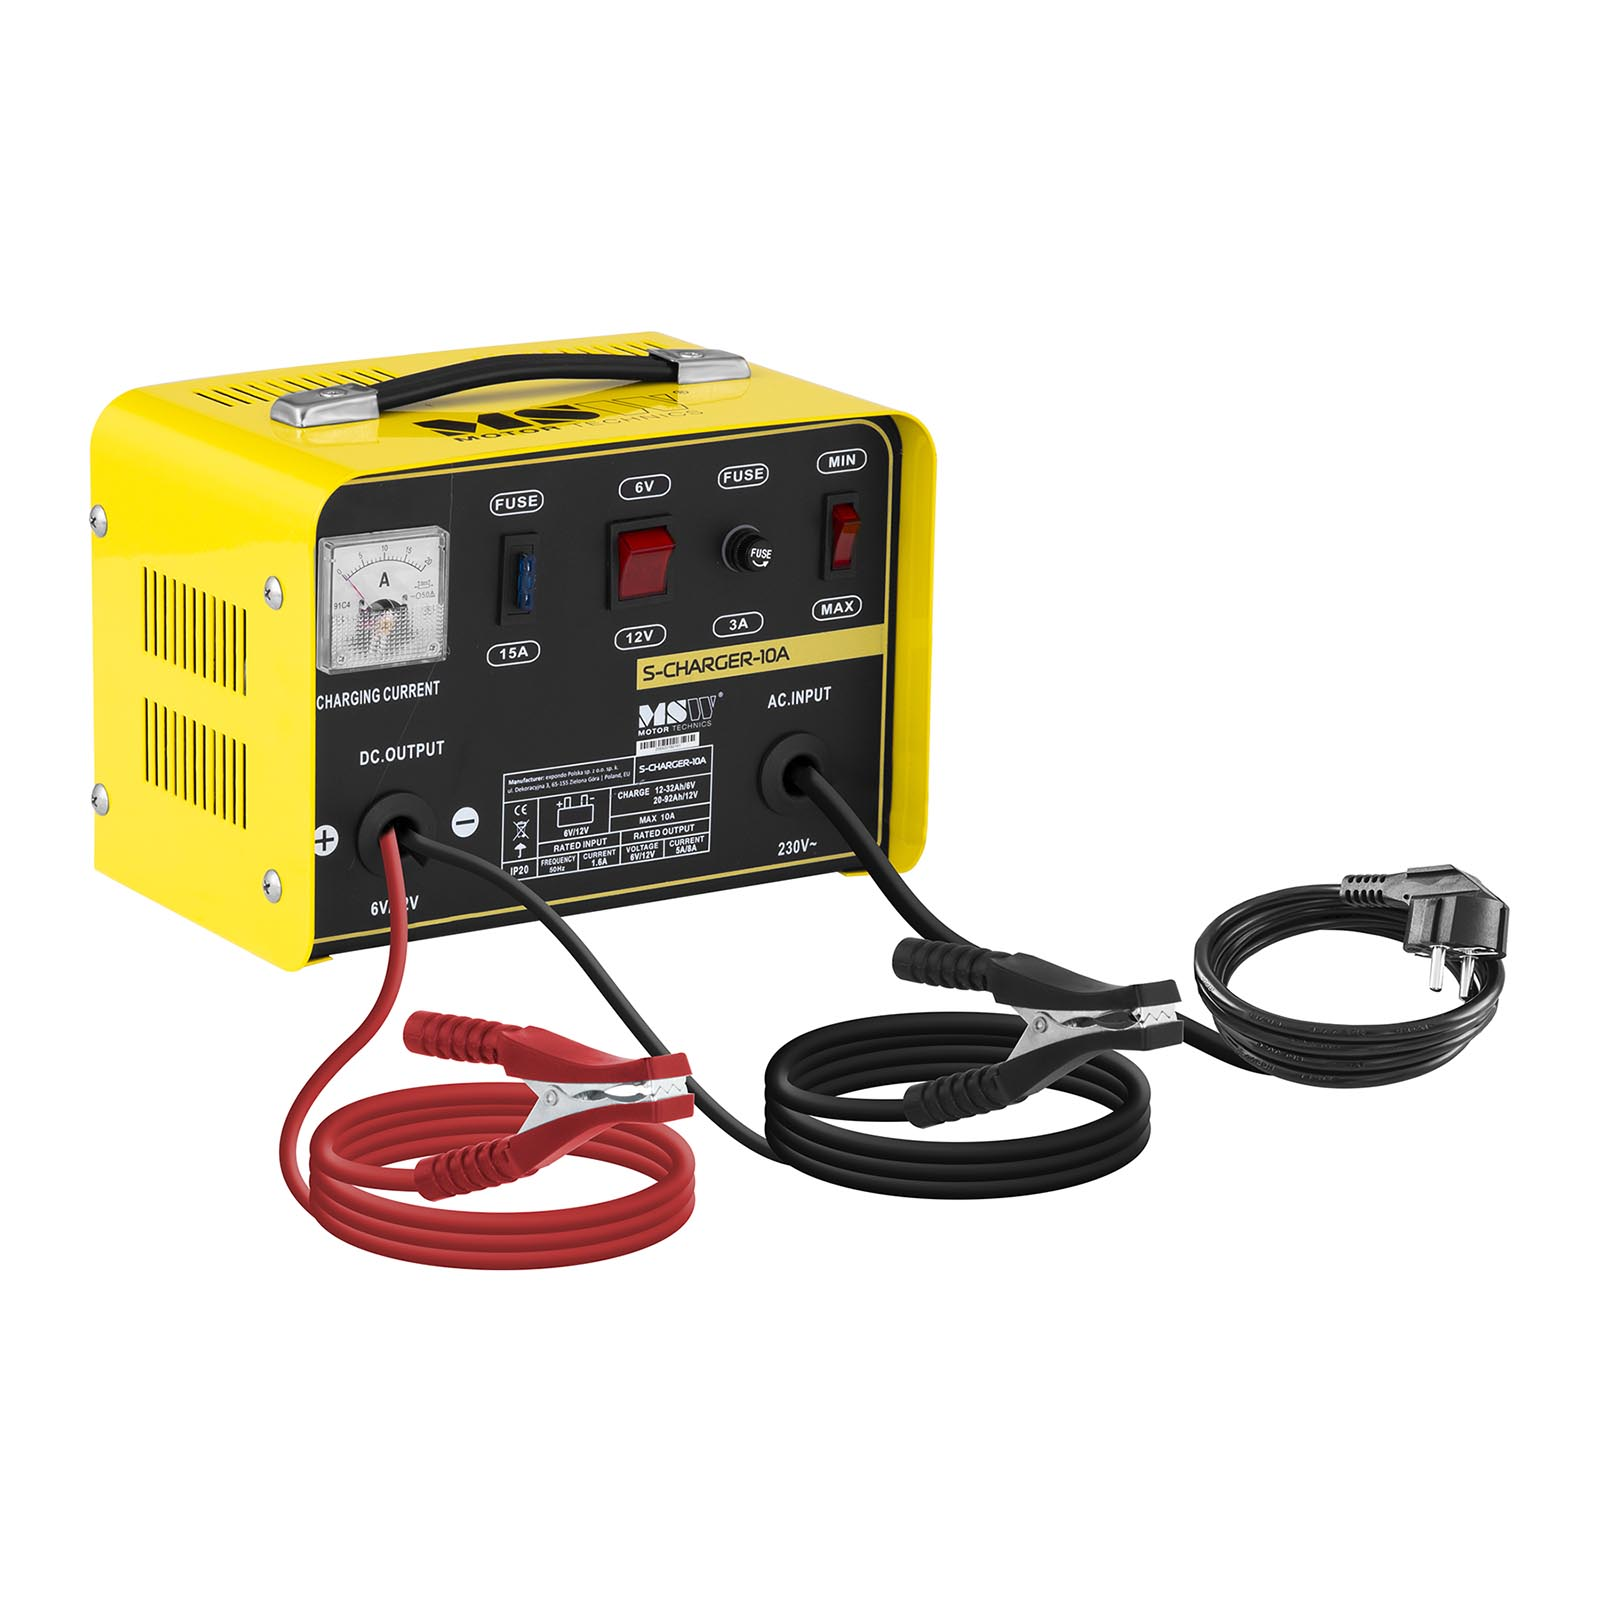 MSW Autobatterie-Ladegerät - 6/12 V - 5/8 A S-CHARGER-10A